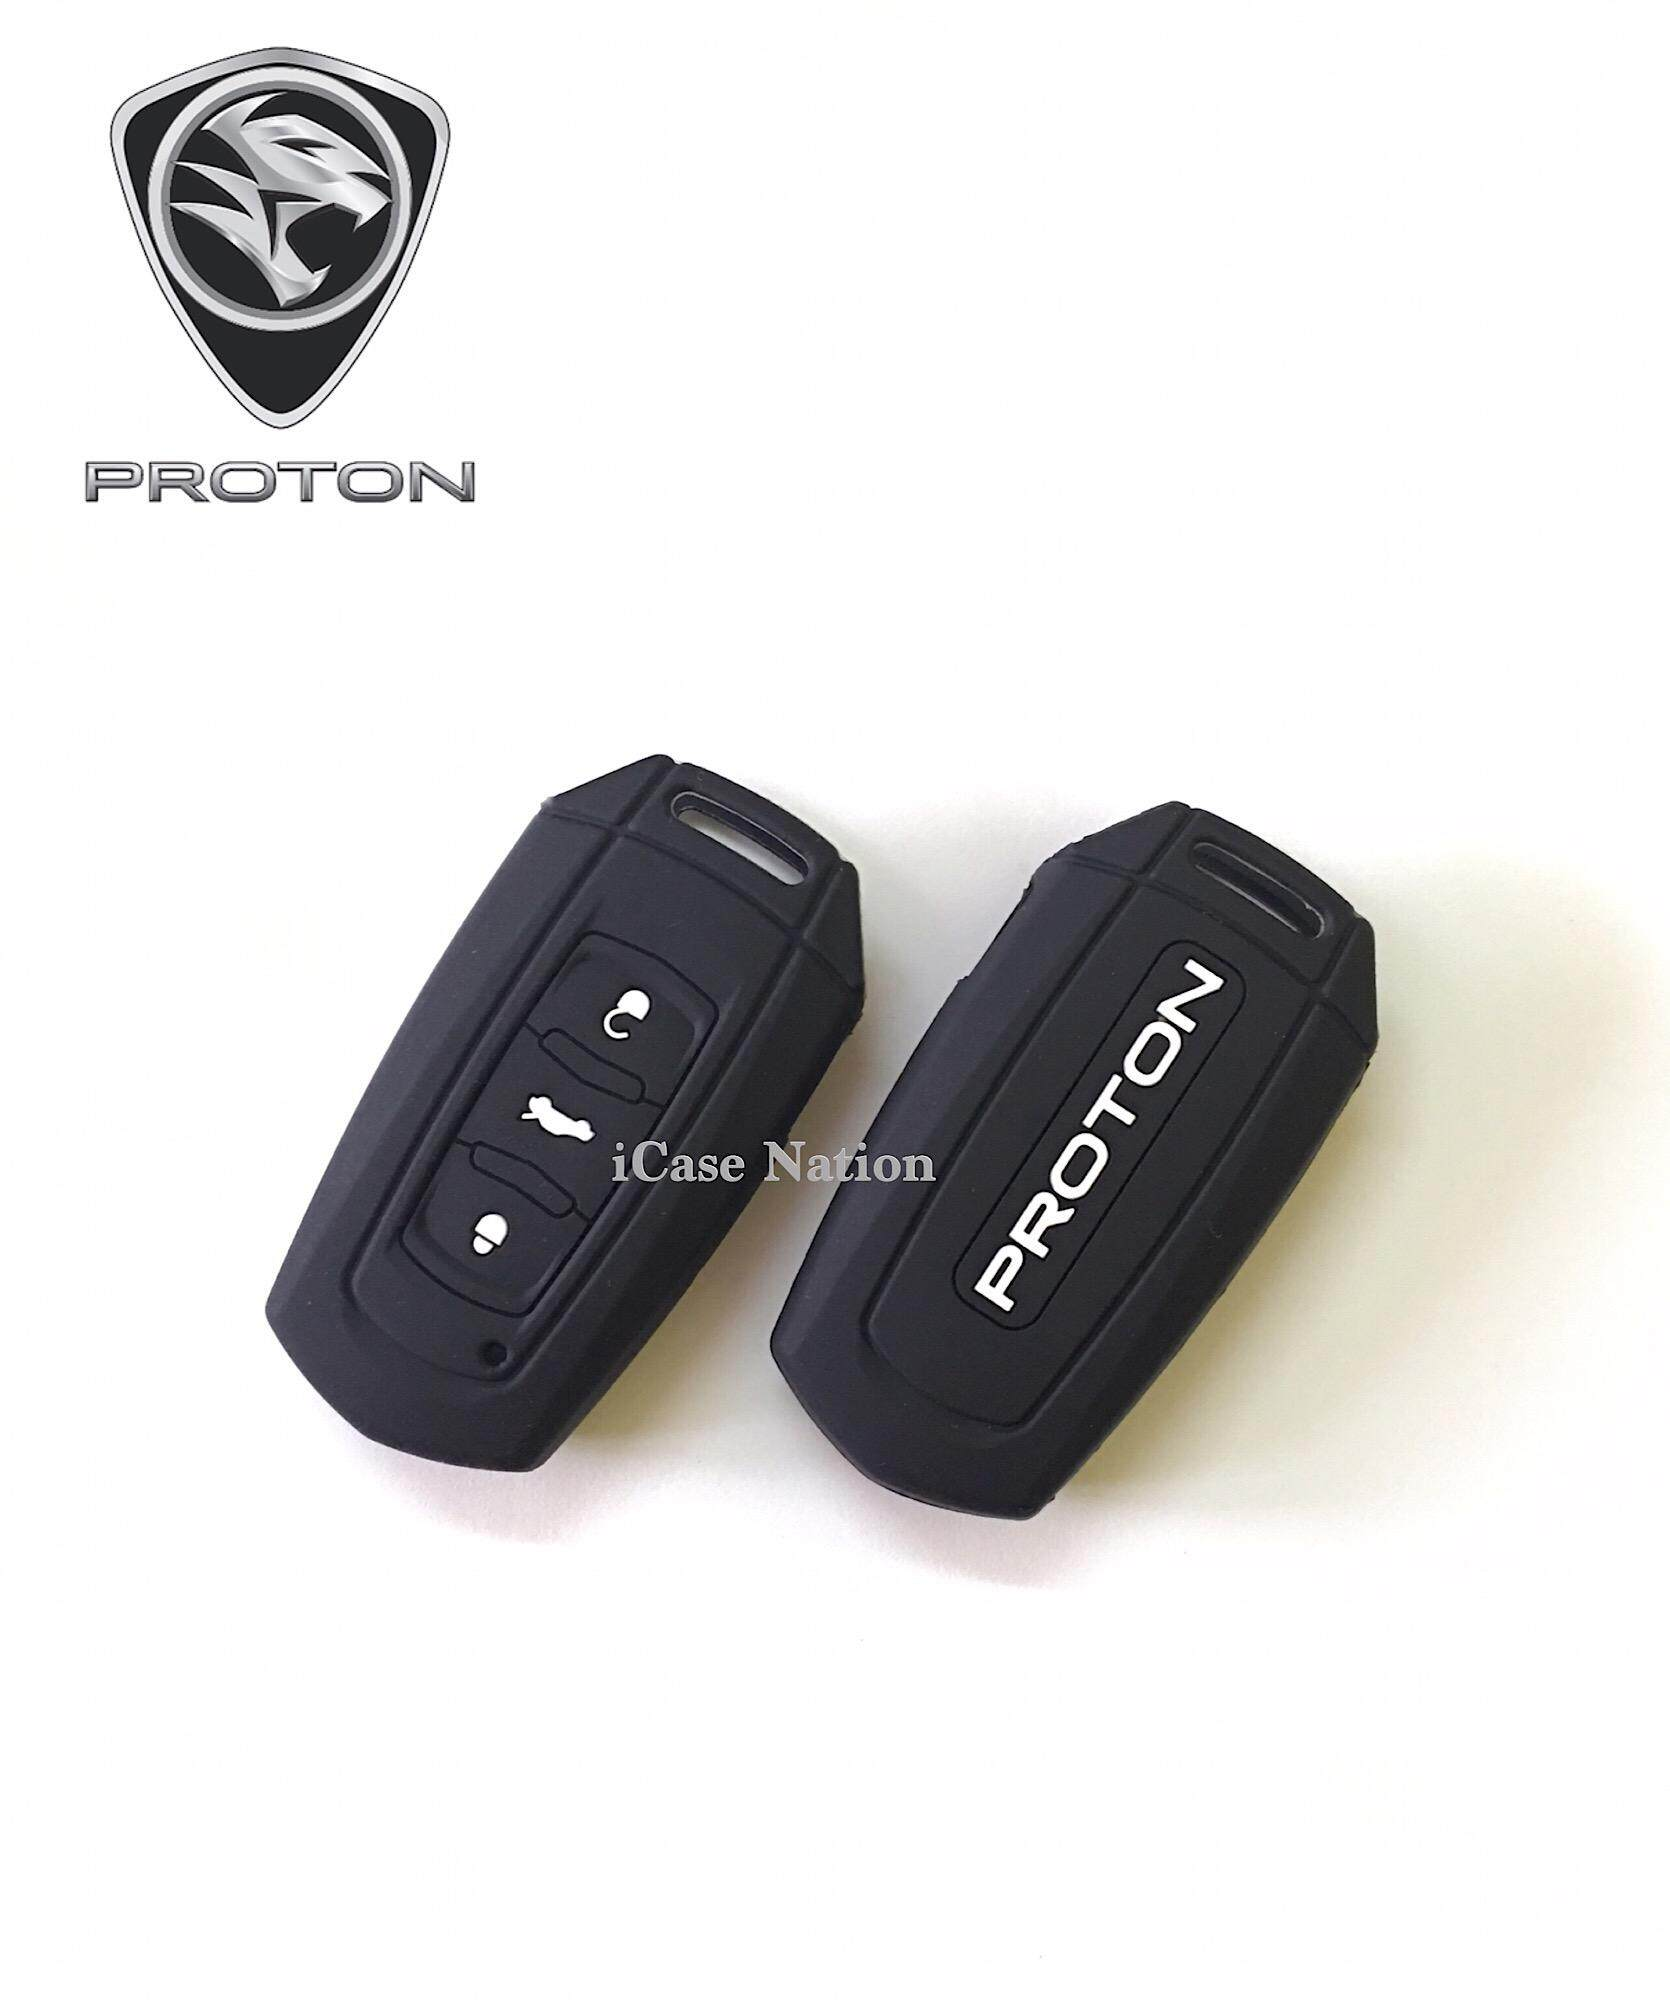 Proton Interior Accessories price in Malaysia - Best Proton Interior